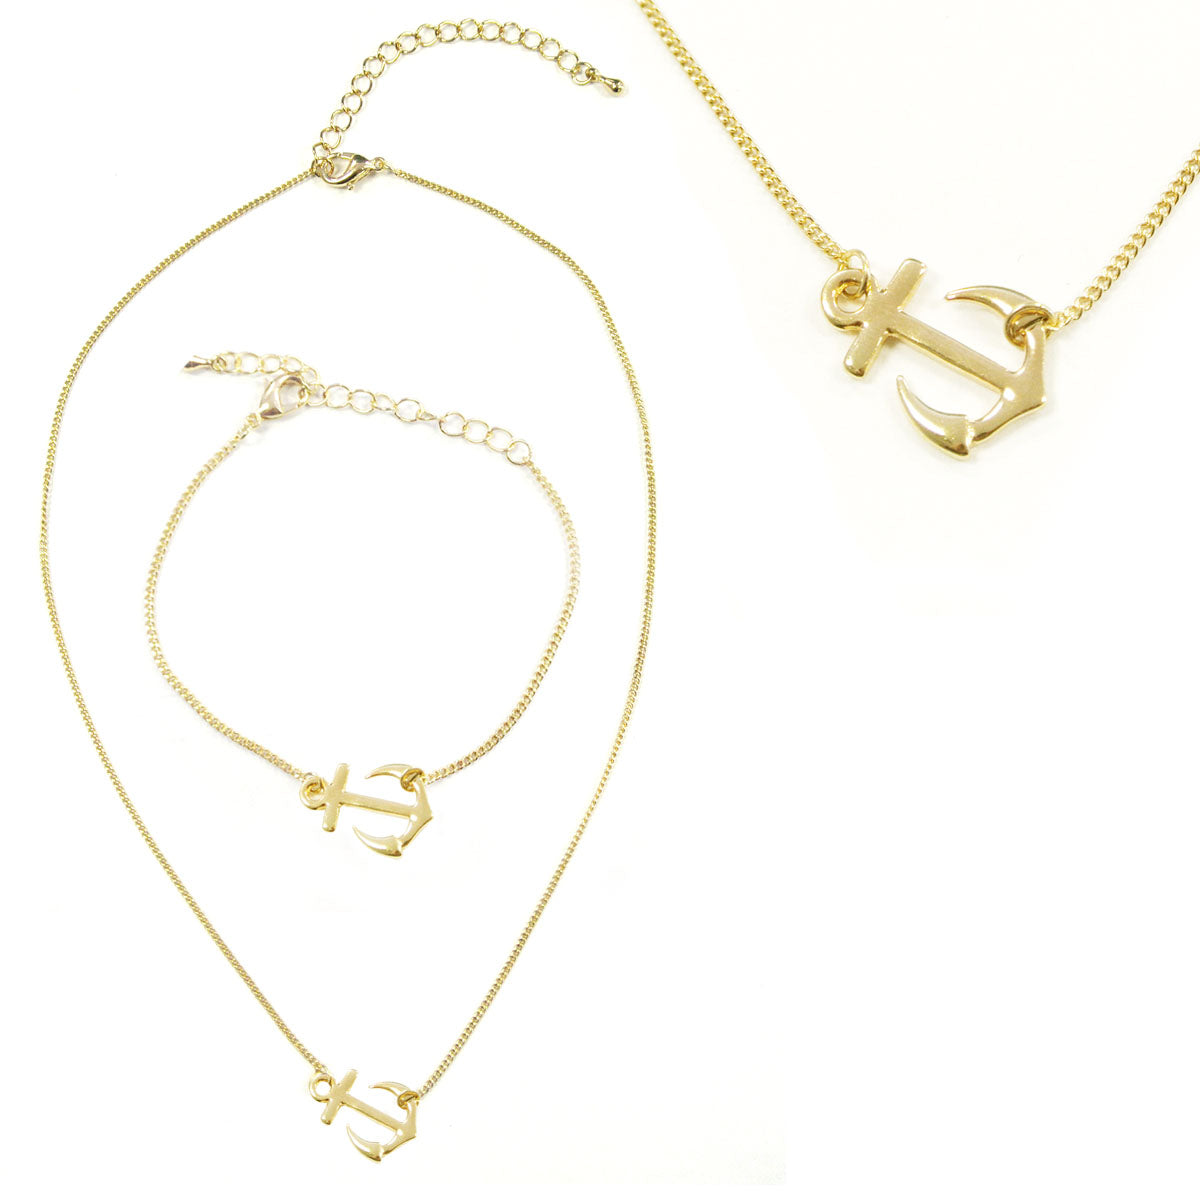 Wrapables Sideways Anchor Pendant Necklace and Bracelet Jeweley Set